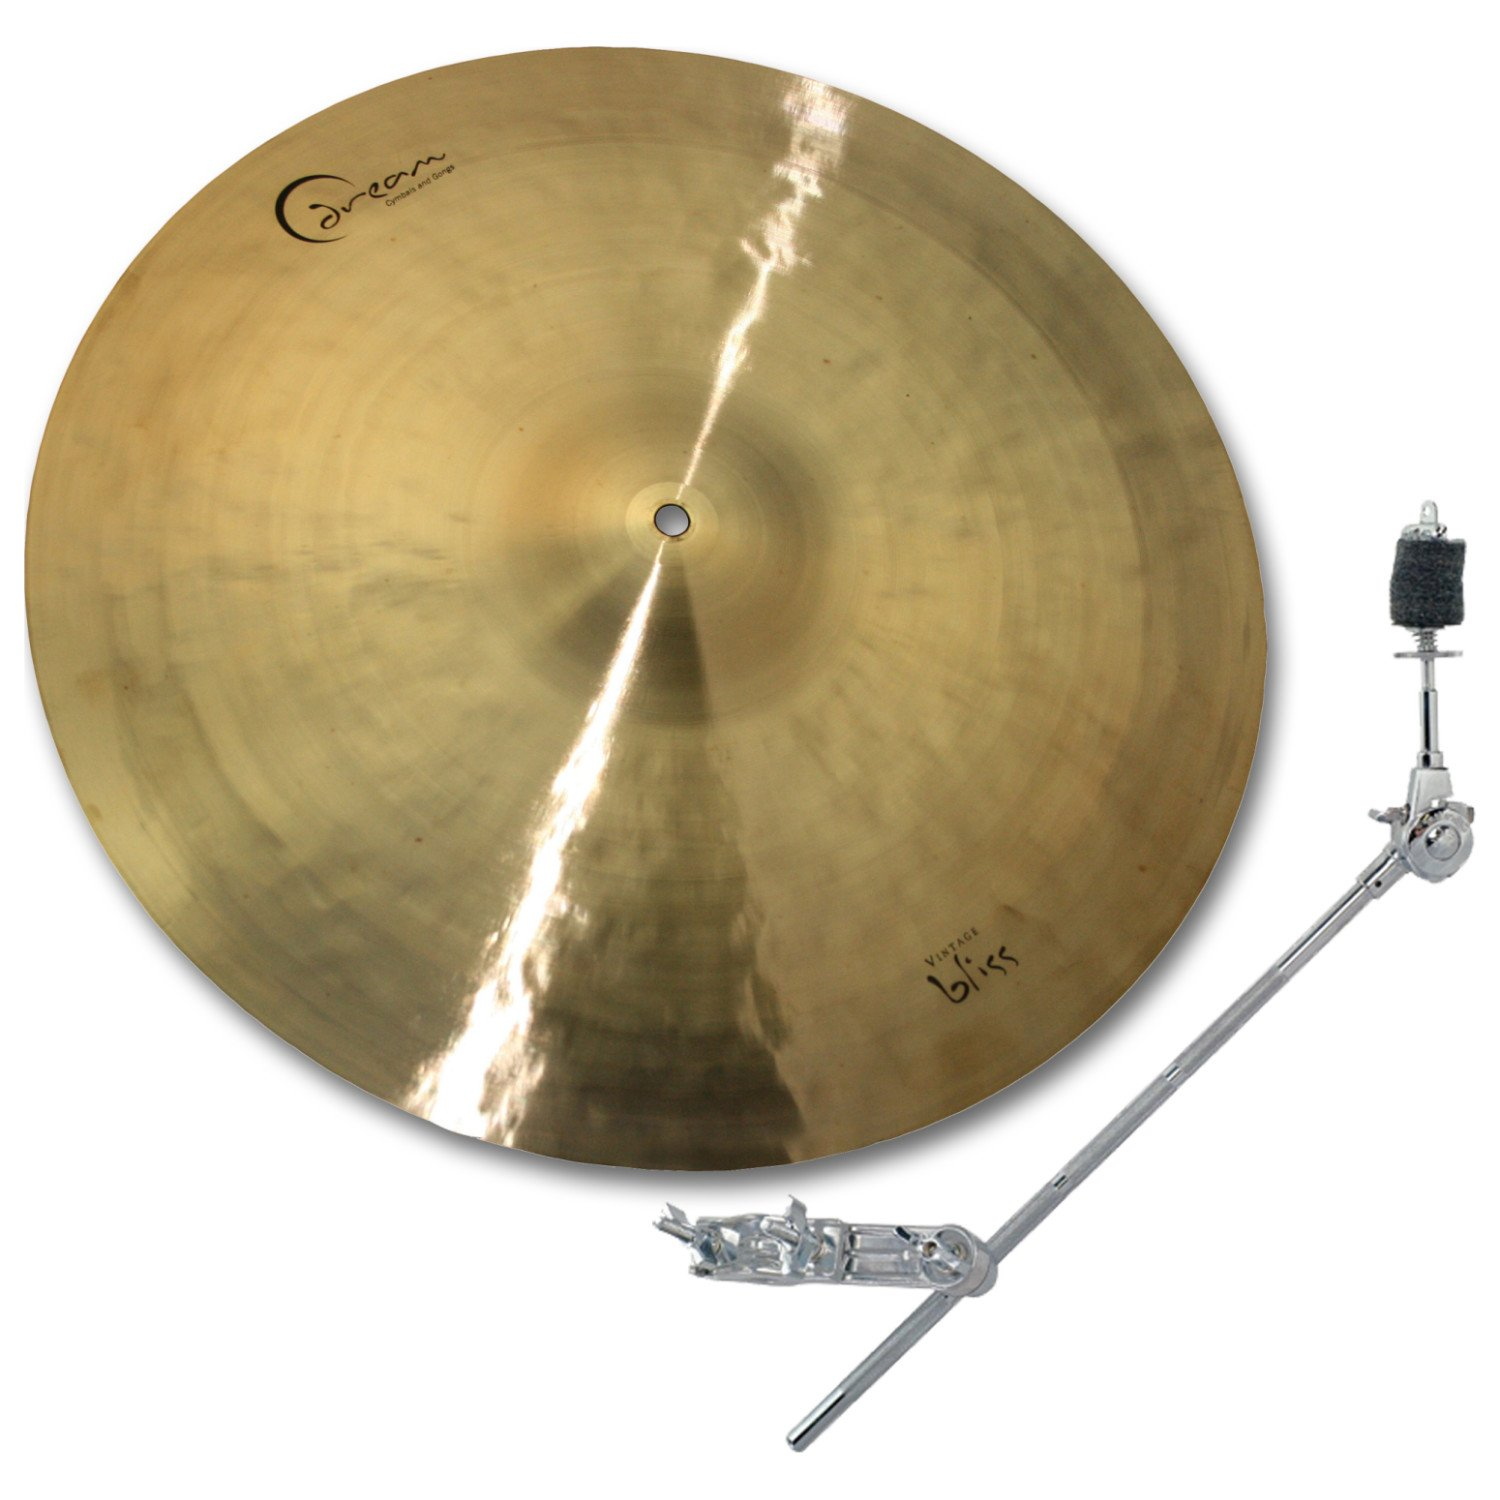 Dream Cymbals VBCRRI18 18'' Vintage Bliss Series Crash/Ride Cymbal with Free Boom Arm and Clamp by Dream Cymbals and Gongs